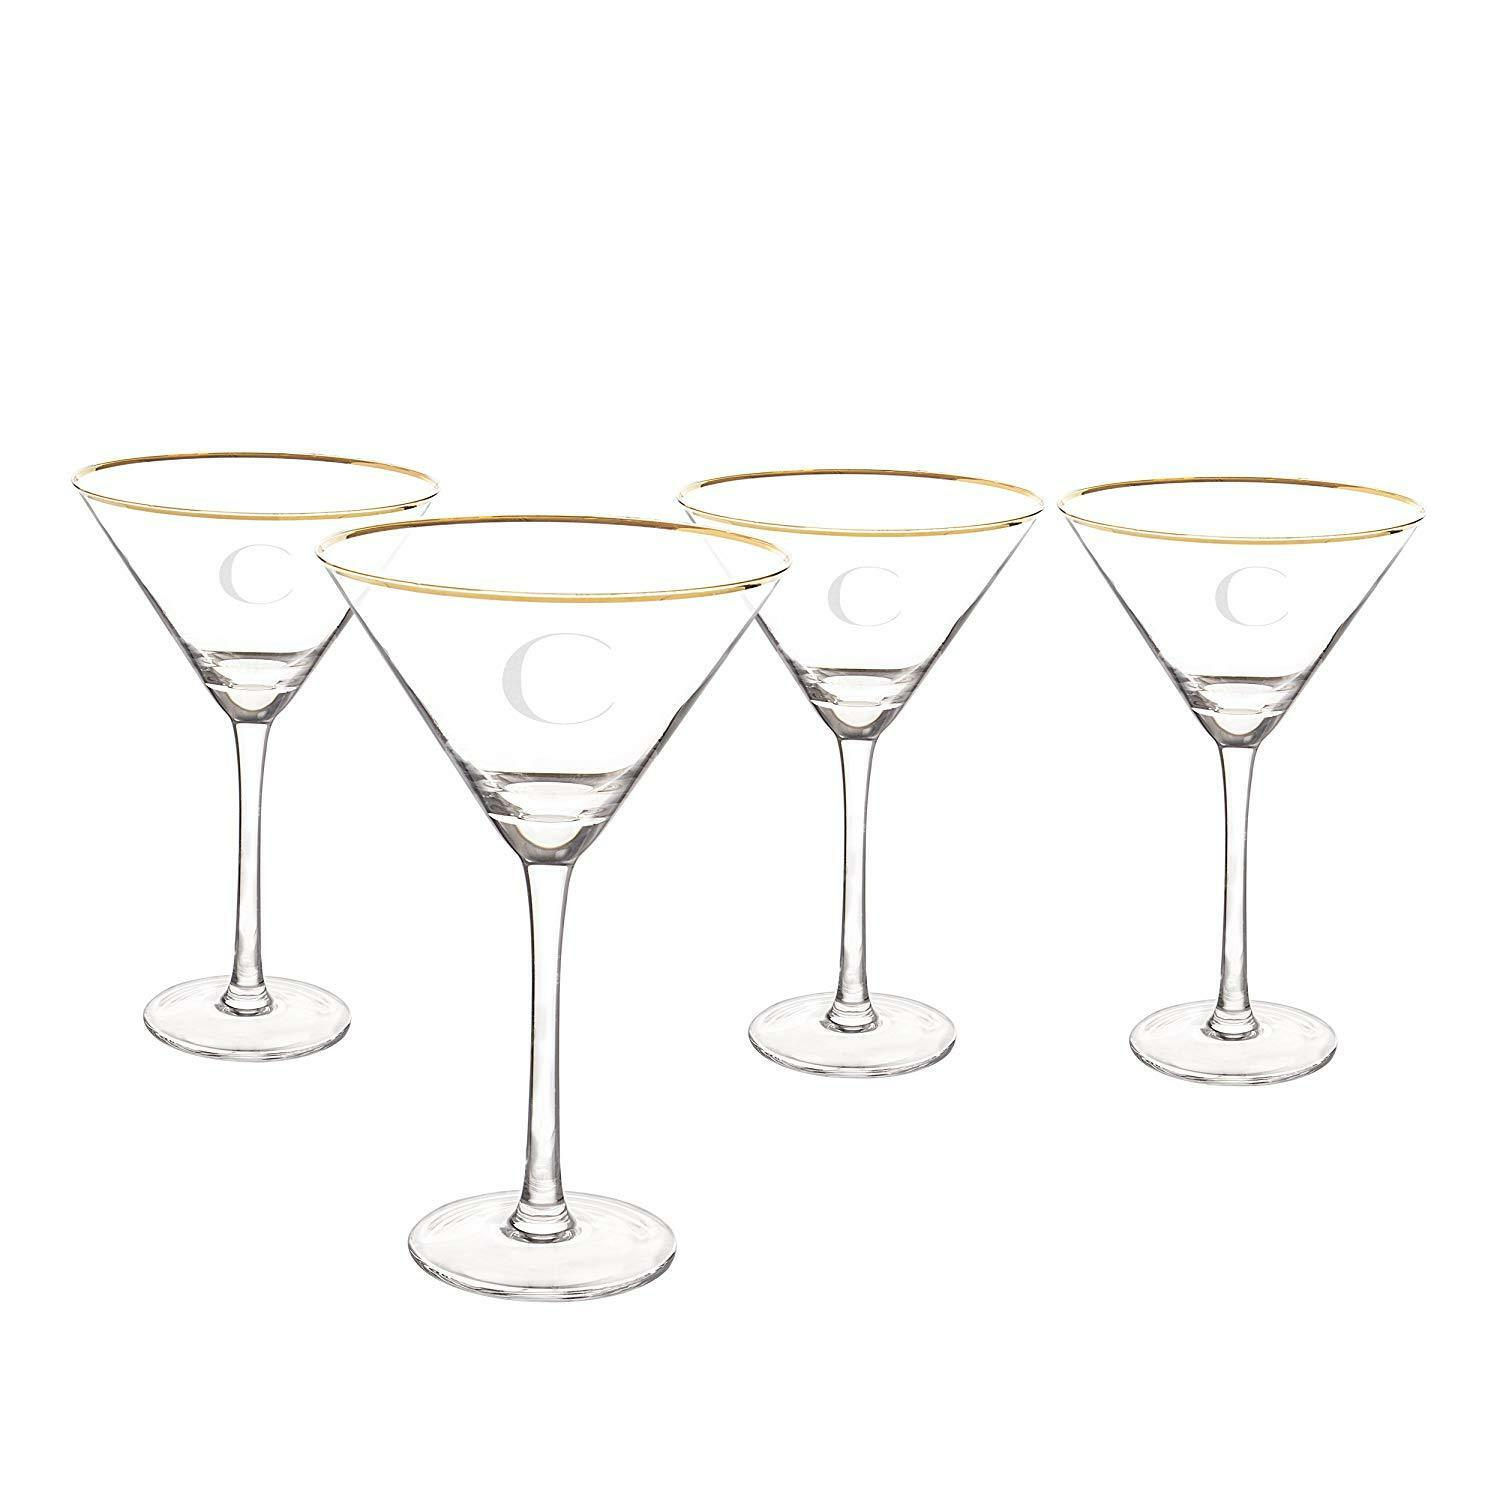 Cathy's Concepts 1381G-4-C Personalized gold Rim Martini Glass Set (Set of 4)